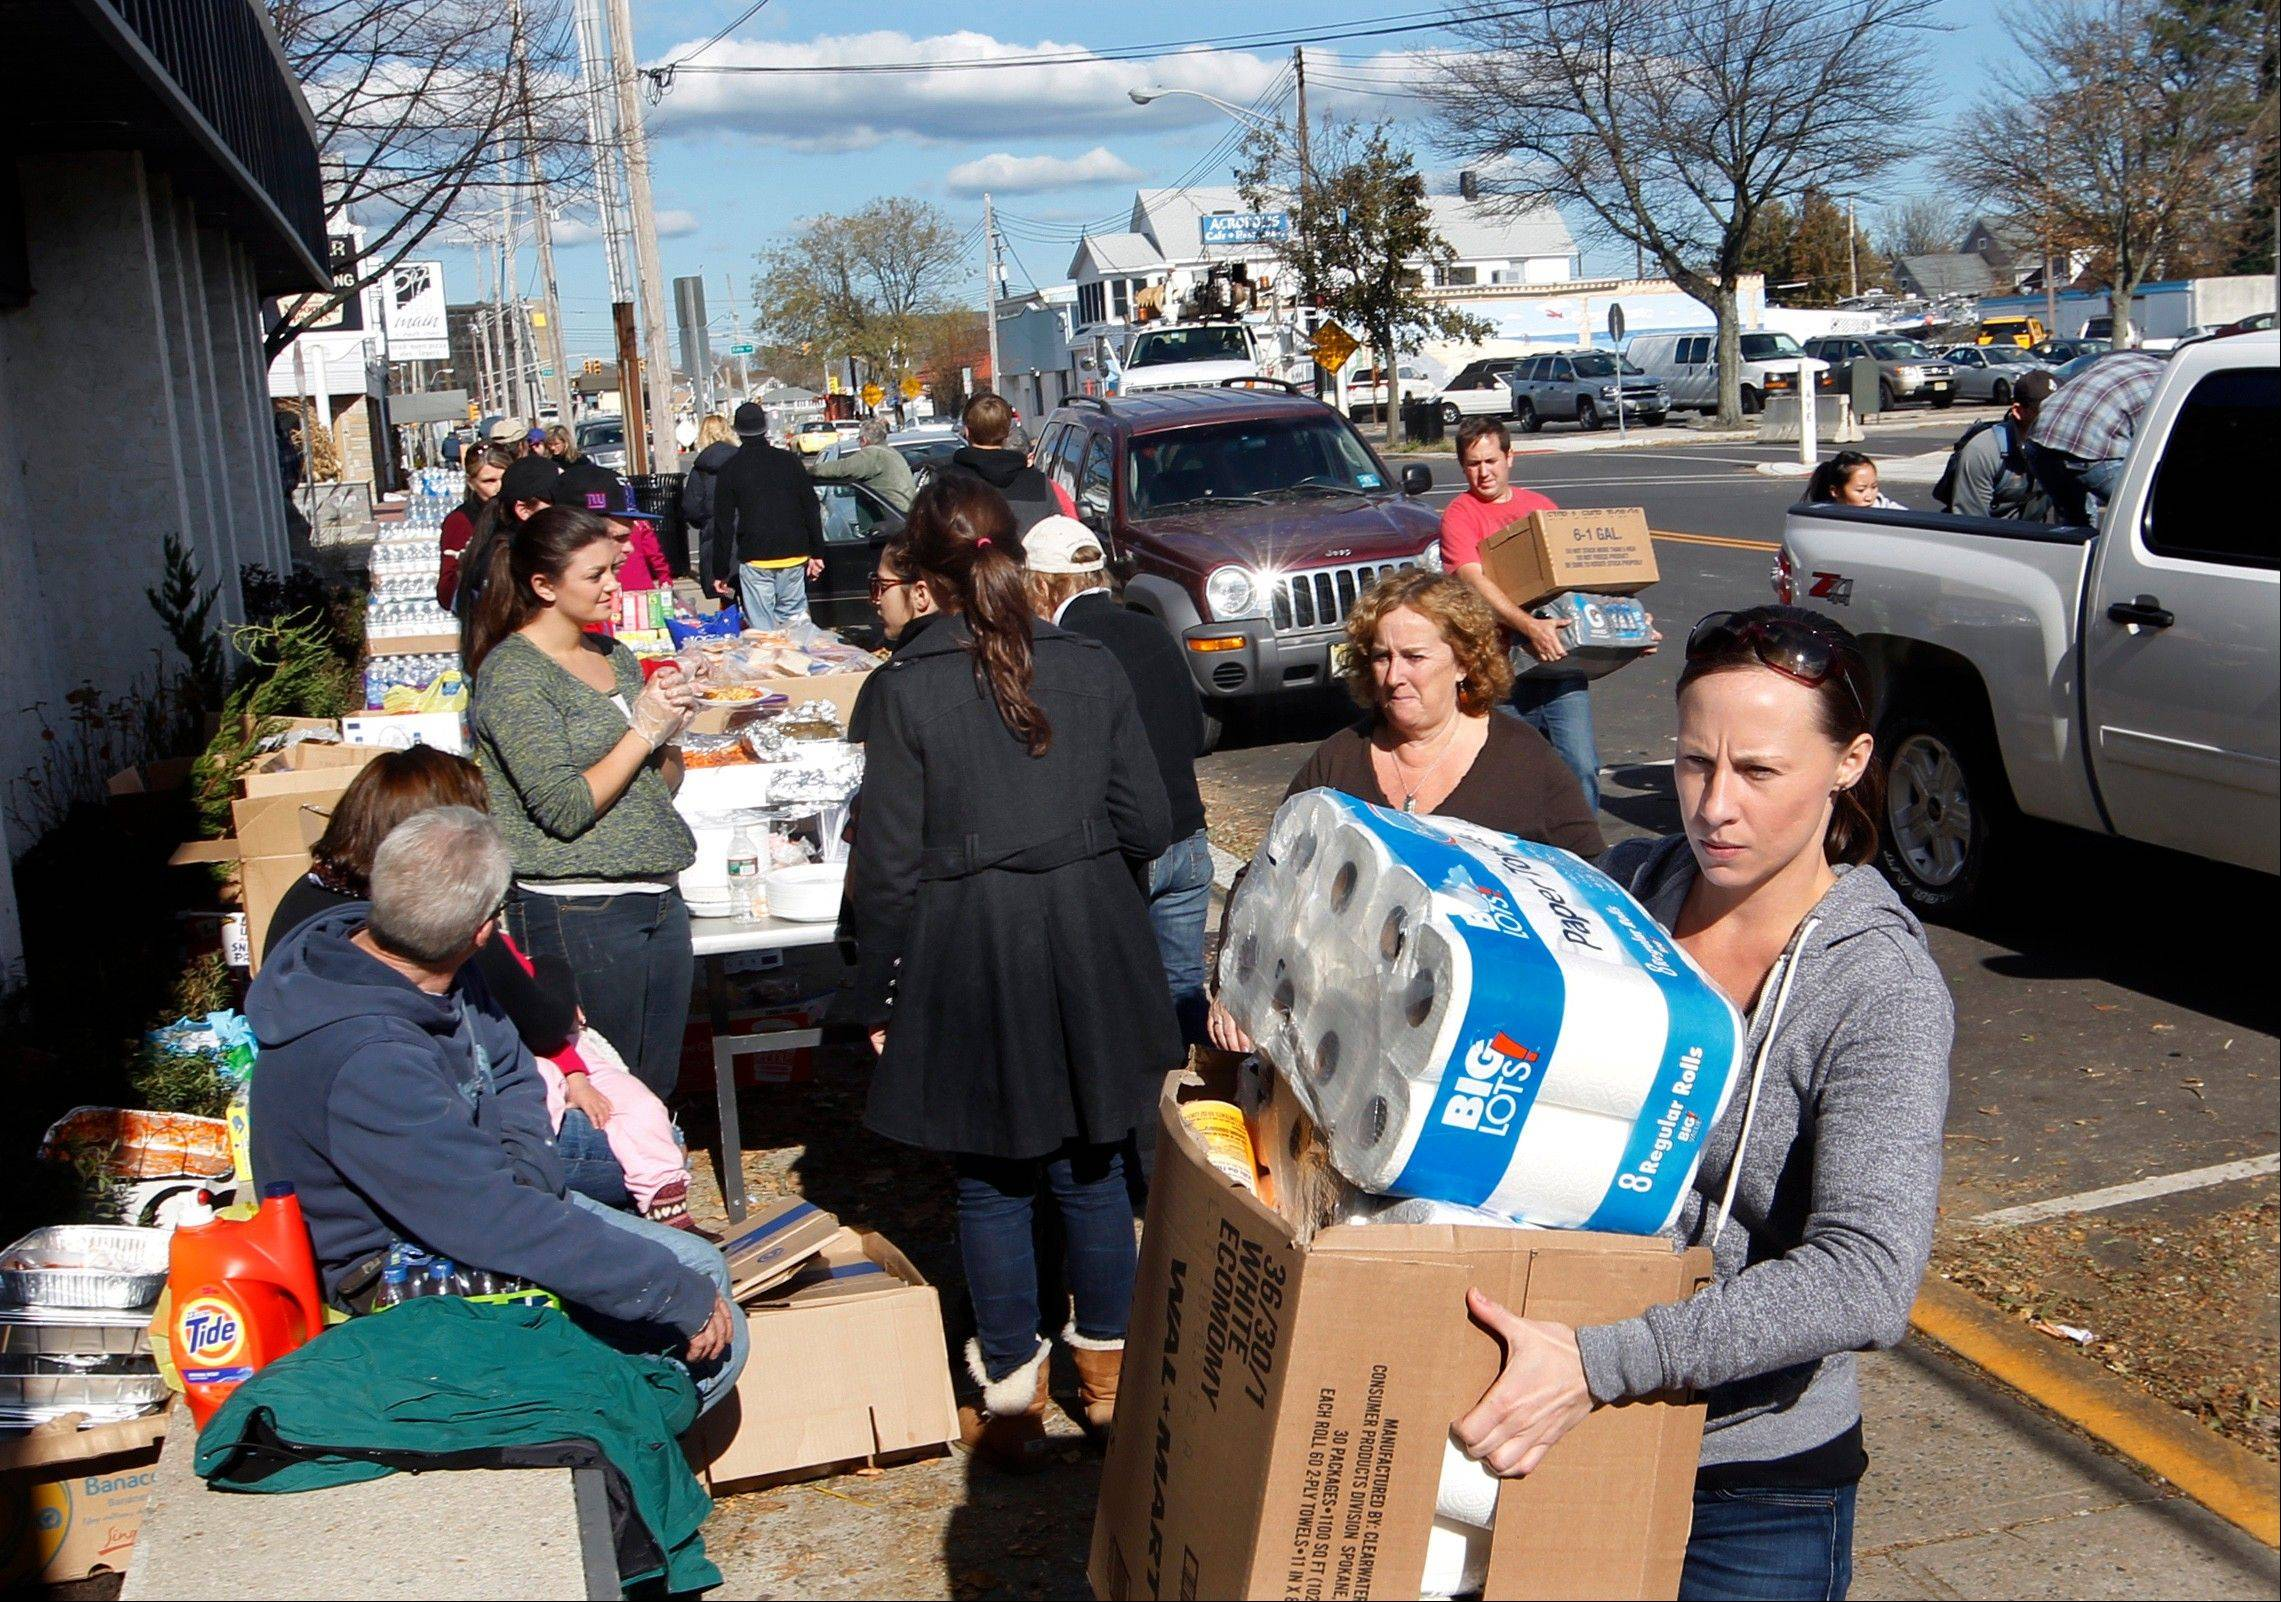 Volunteers carry donated goods into the Belmar recreation center Sunday in Belmar, N.J. After being battered by Monday�s storm surge by Superstorm Sandy much of the region is still without power and many homes have been damaged.